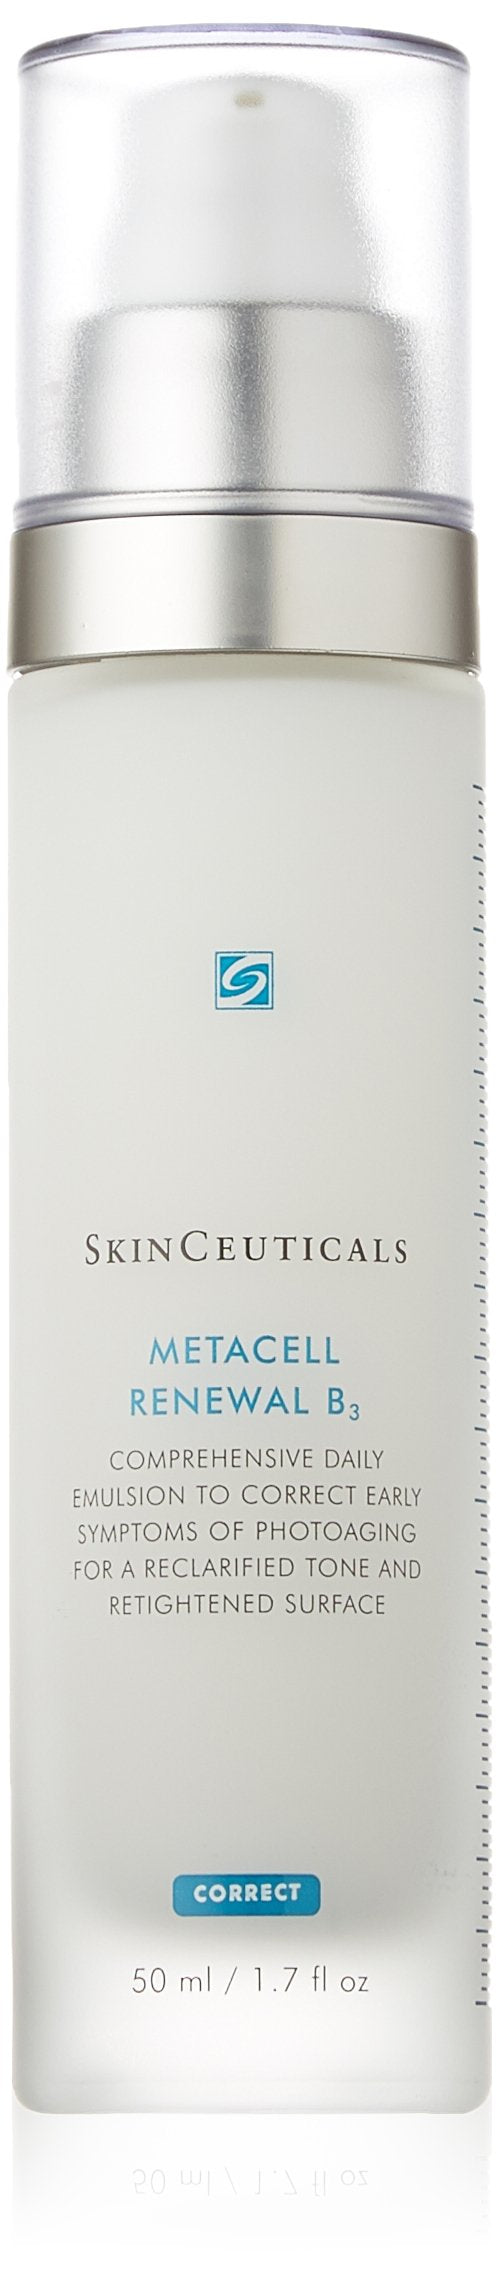 SkinCeuticals B3 Metacell Renewal, 1.7 Fluid Ounce